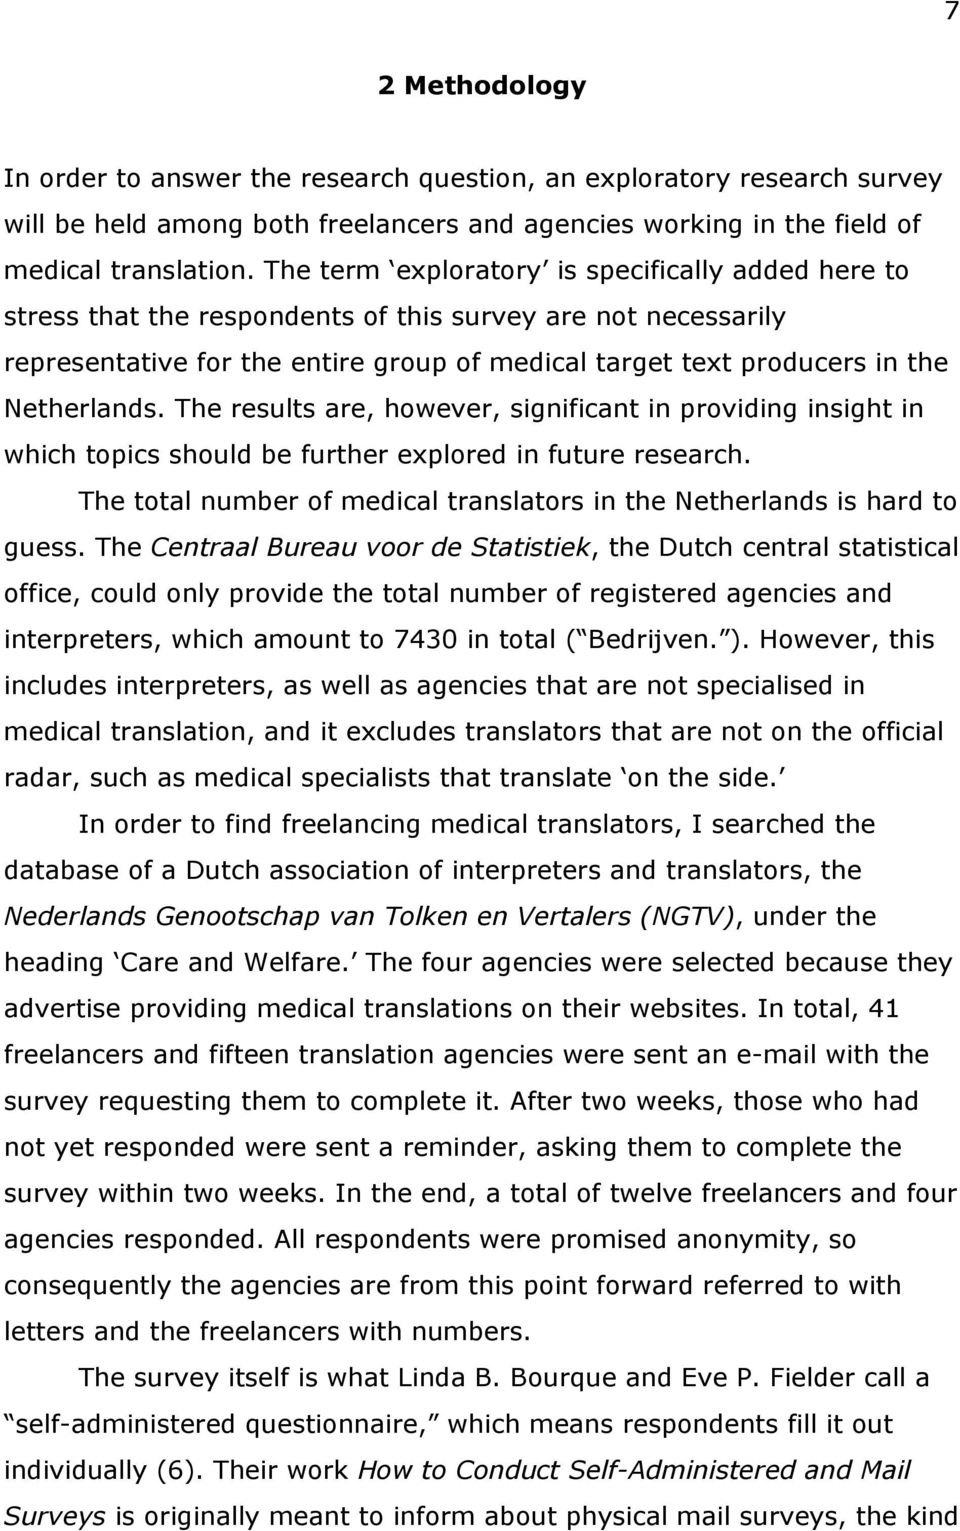 The results are, however, significant in providing insight in which topics should be further eplored in future research. The total number of medical translators in the Netherlands is hard to guess.